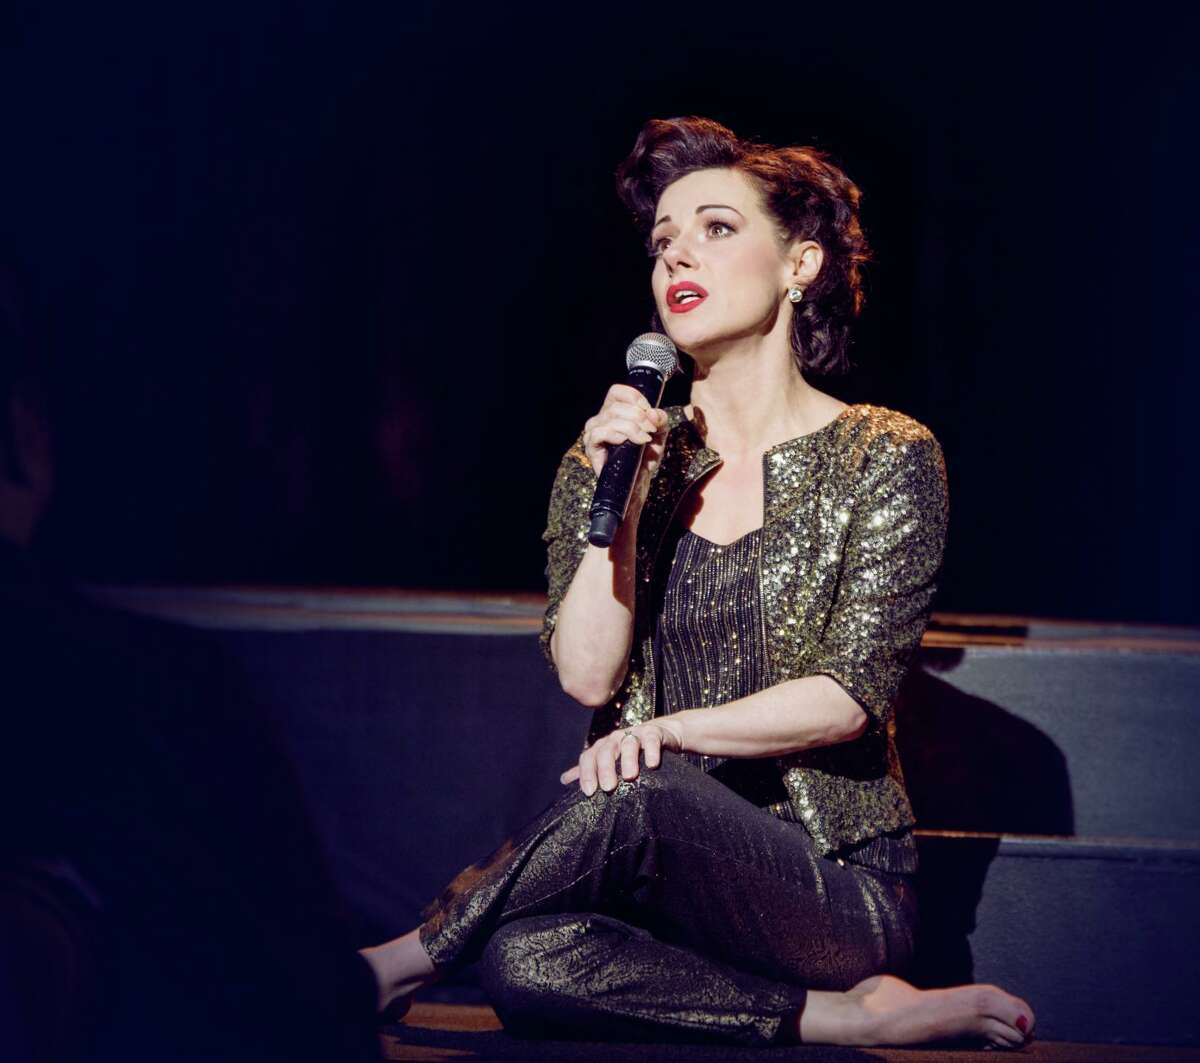 Angela Ingersoll will sing Judy Garland songs in the streamed concert event.